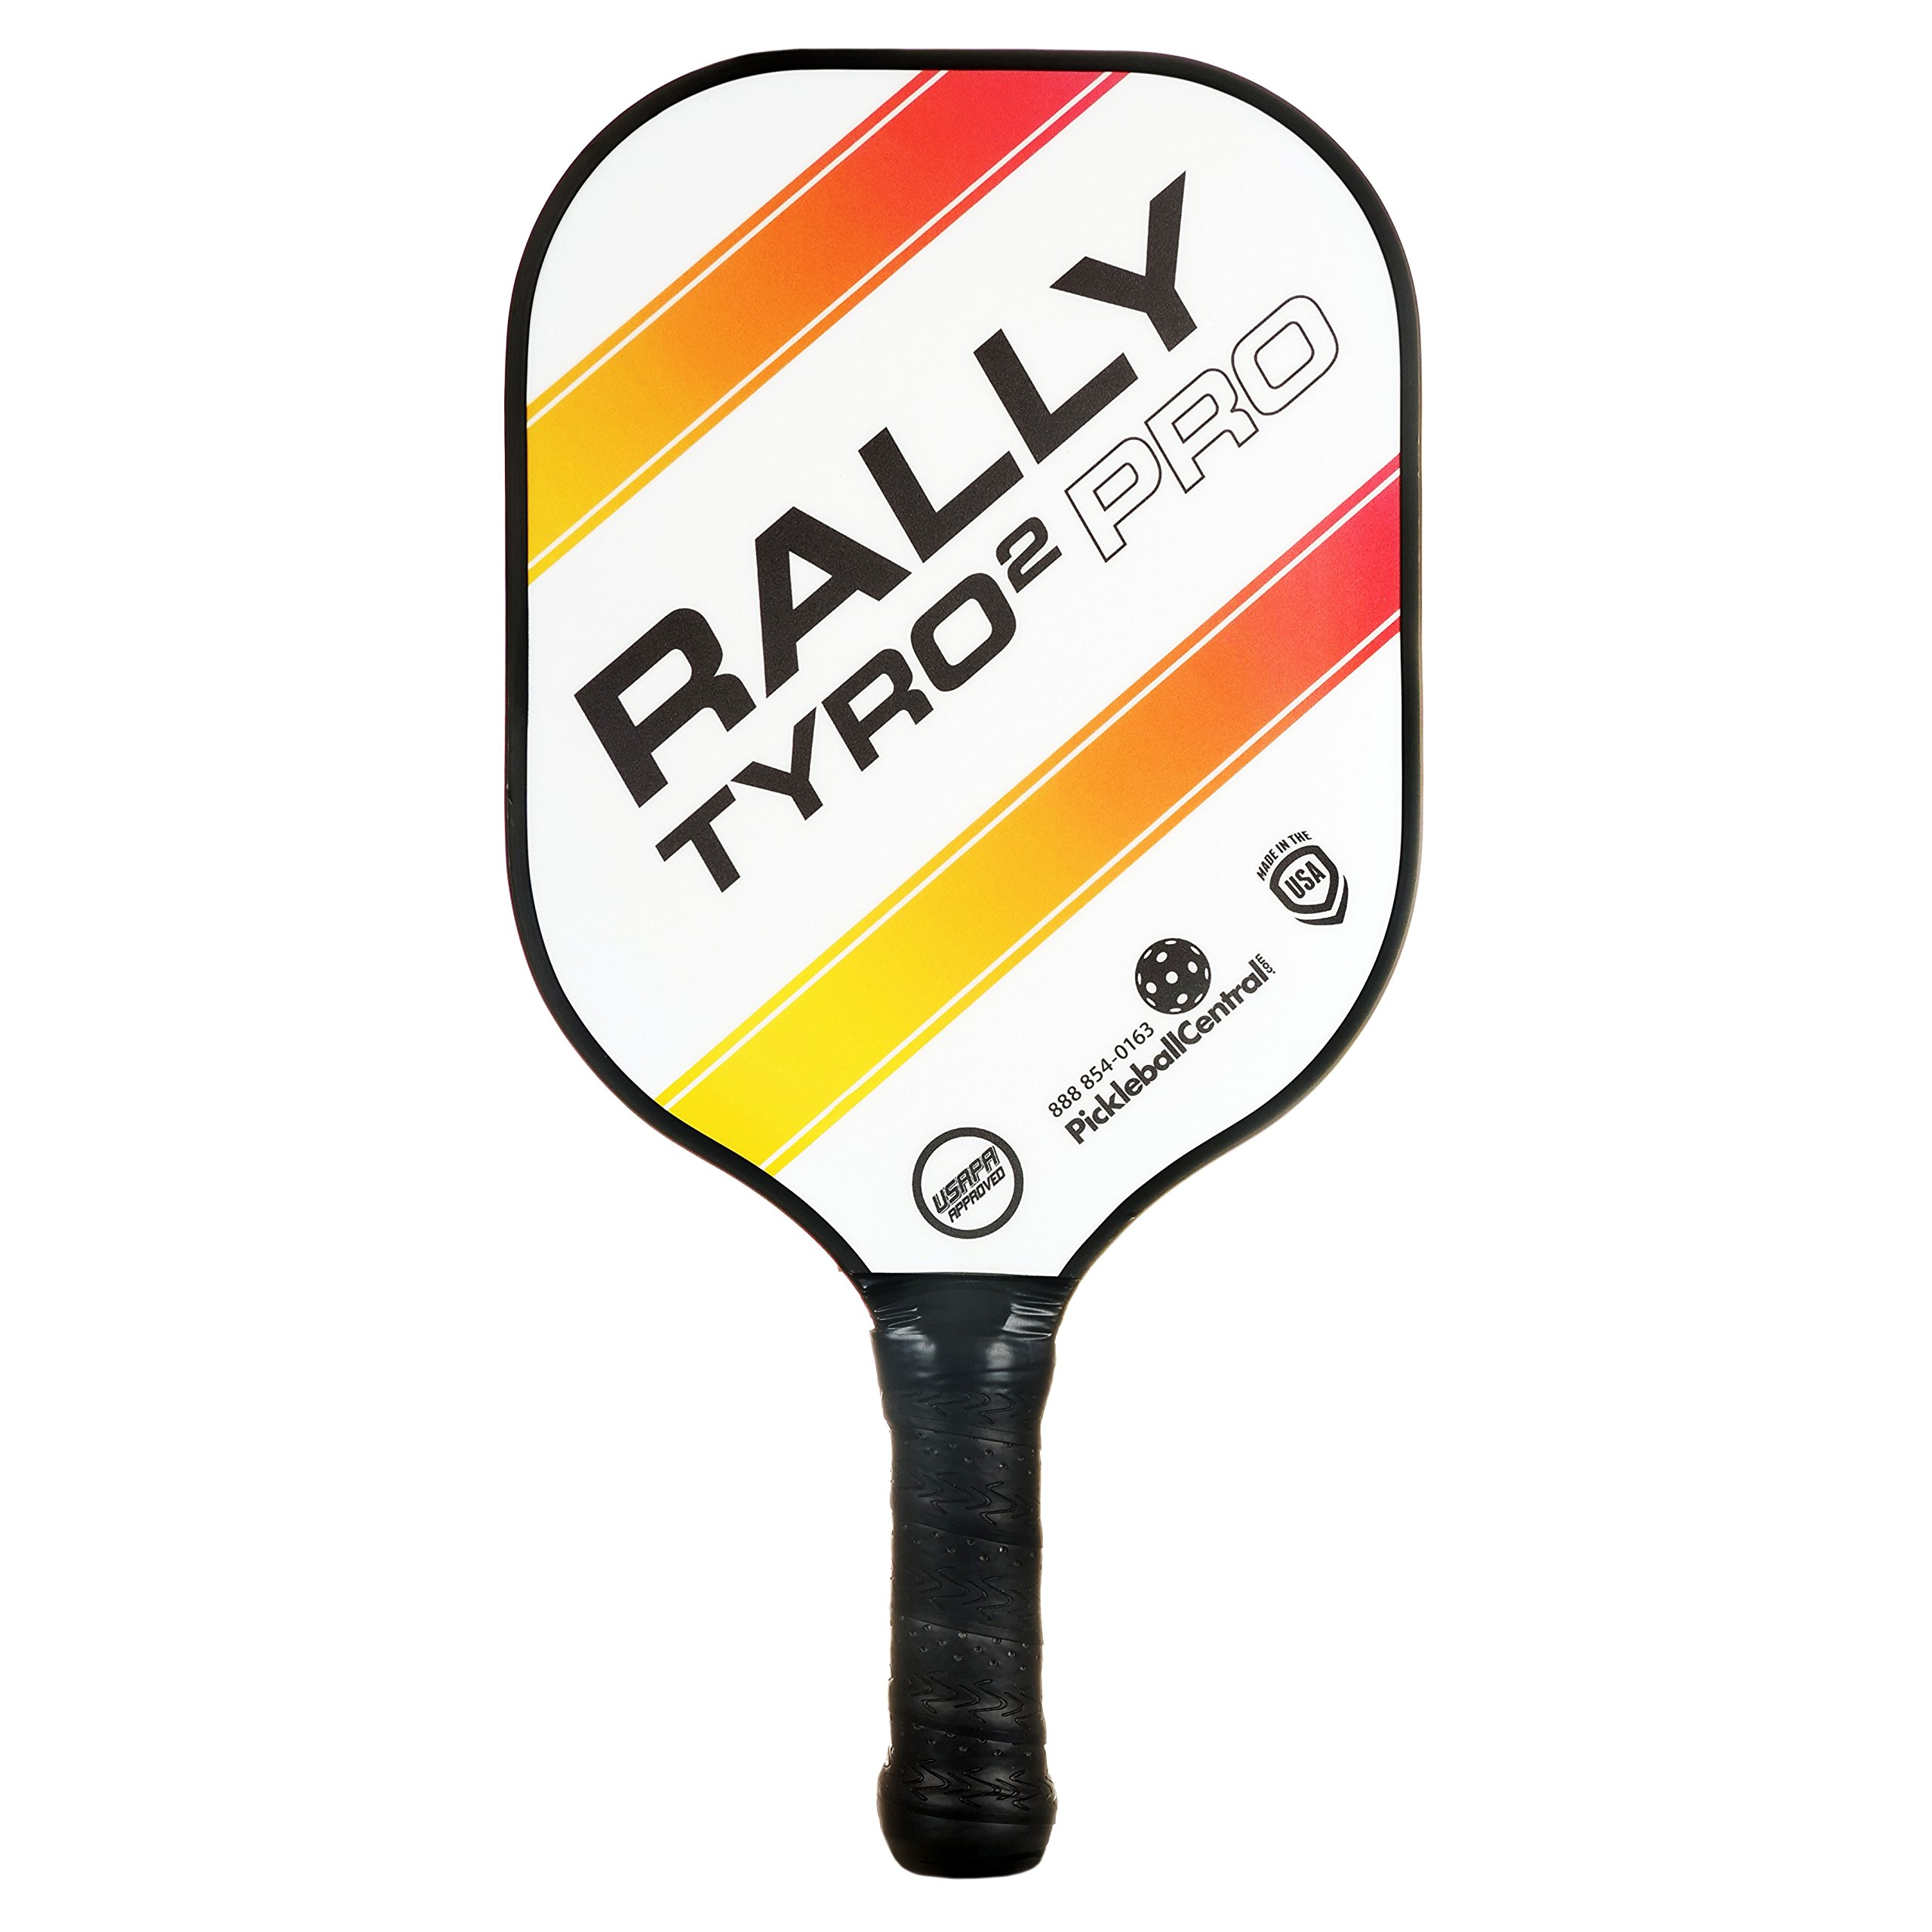 PickleballCentral Rally Tyro 2 Pro Pickle Ball Paddle, Single, White by PickleballCentral (Image #1)